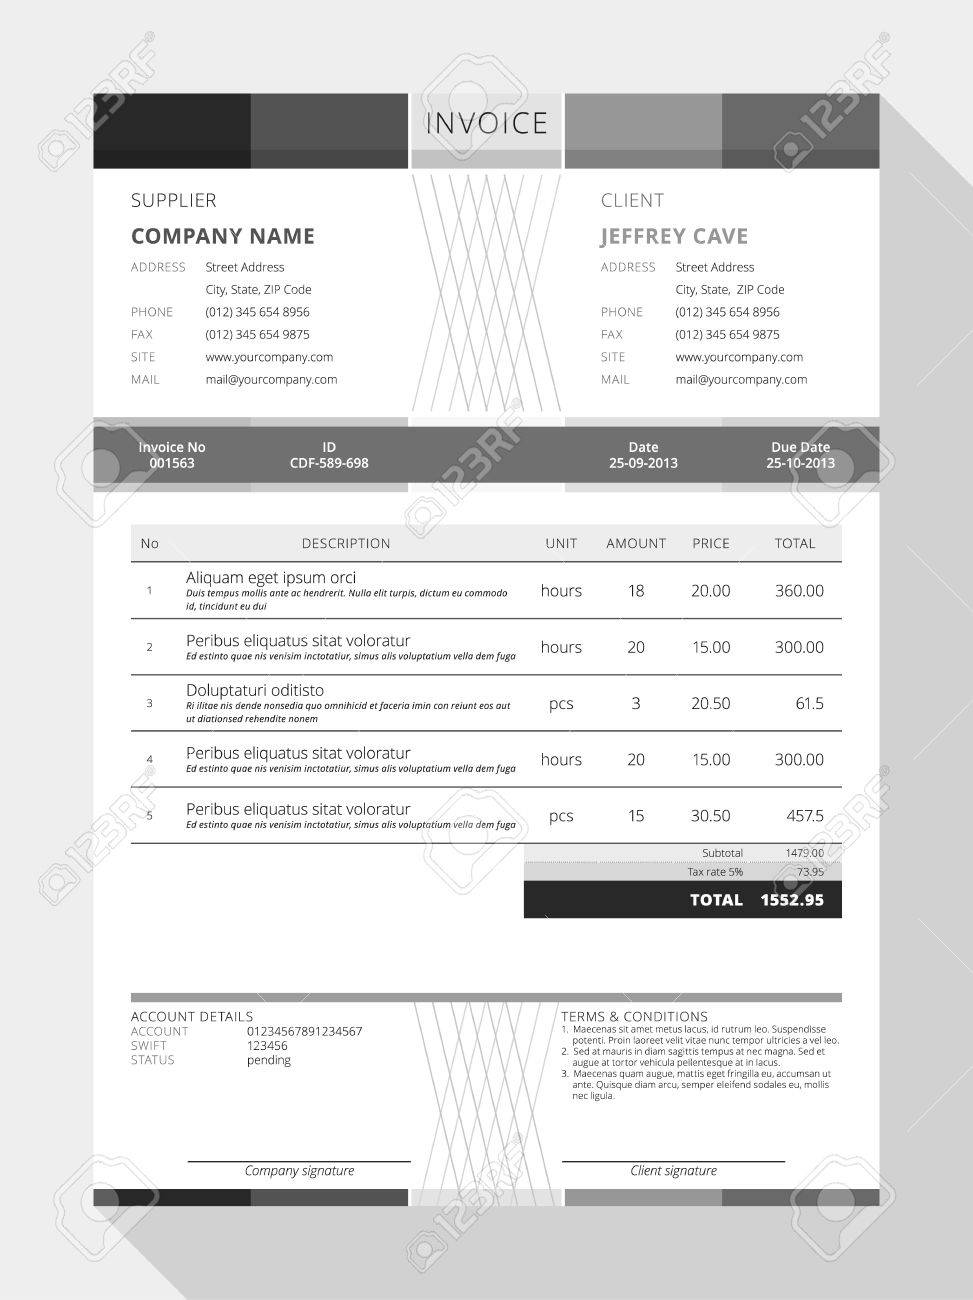 Angkajituus  Scenic Design An Invoice  Professional Graphic Design Invoice  With Outstanding Vector Customizable Invoice Form Template Design Vector   Design An Invoice With Attractive Mrv Fee Payment Receipt Also Vehicle Registration Receipt In Addition Make Fake Receipts And Mail Receipt As Well As Target Lost Receipt Additionally Best Way To Keep Track Of Receipts From Happytomco With Angkajituus  Outstanding Design An Invoice  Professional Graphic Design Invoice  With Attractive Vector Customizable Invoice Form Template Design Vector   Design An Invoice And Scenic Mrv Fee Payment Receipt Also Vehicle Registration Receipt In Addition Make Fake Receipts From Happytomco